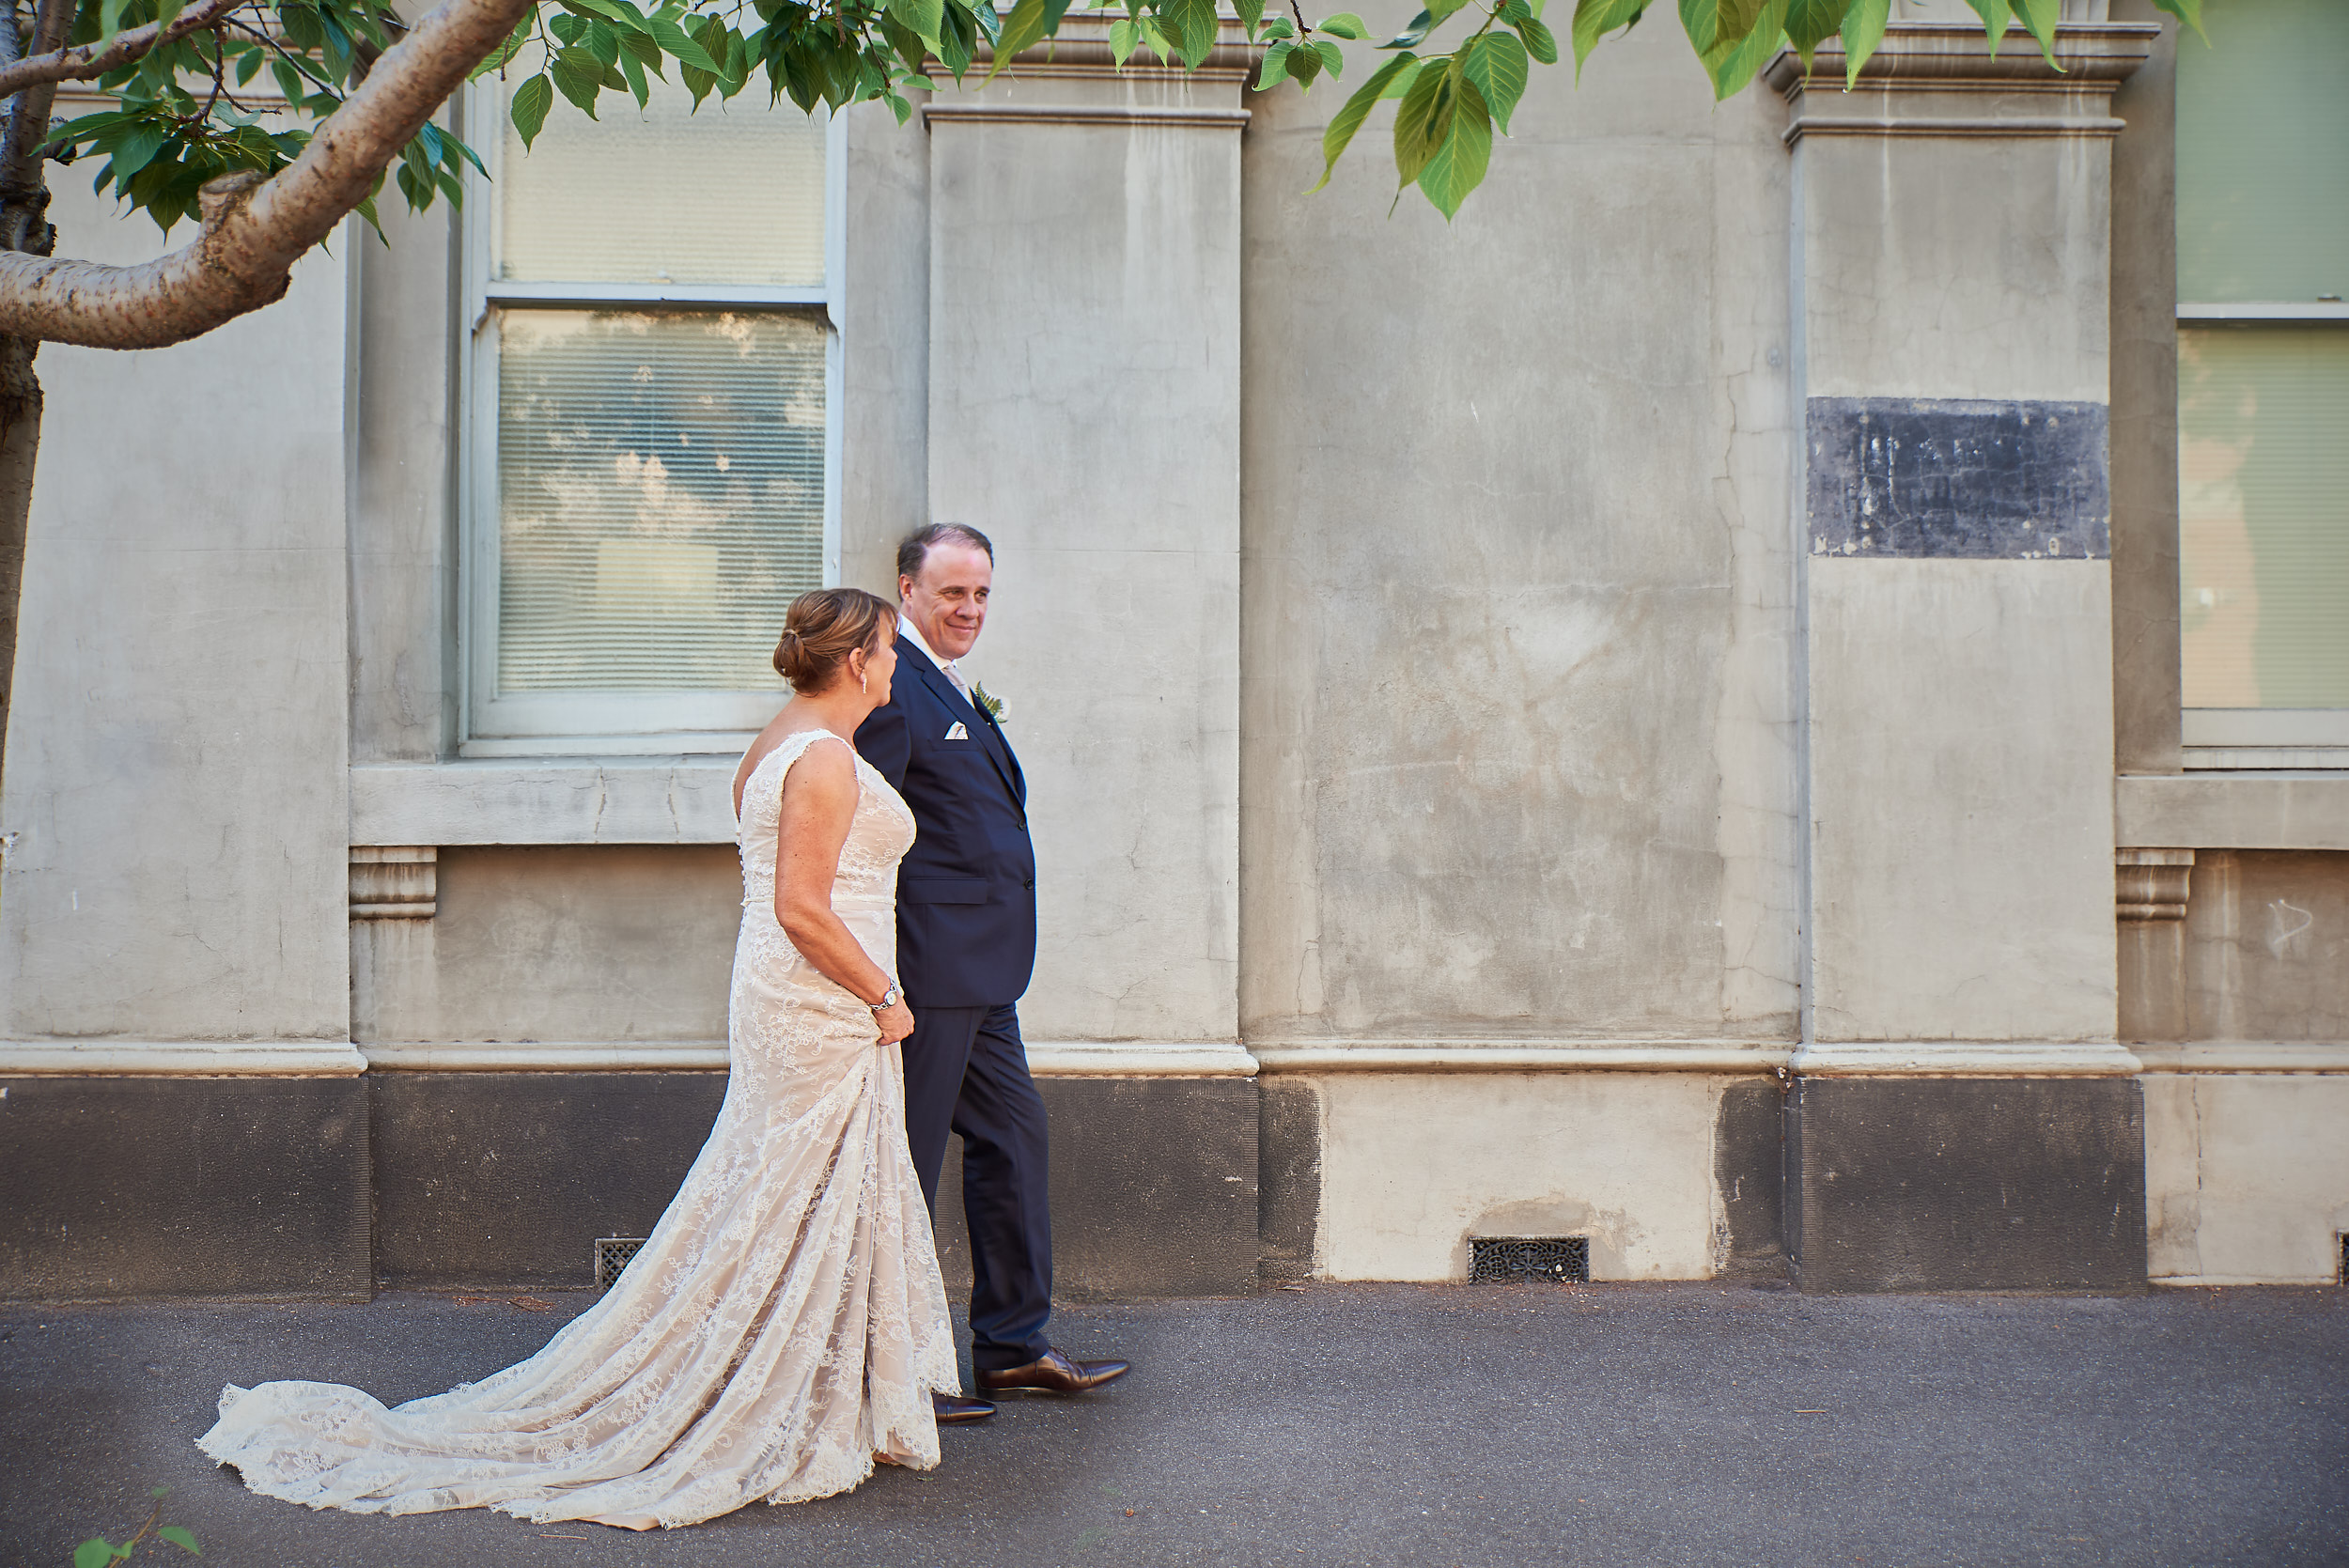 Bride and groom walking portrait non-hipster wedding.jpg